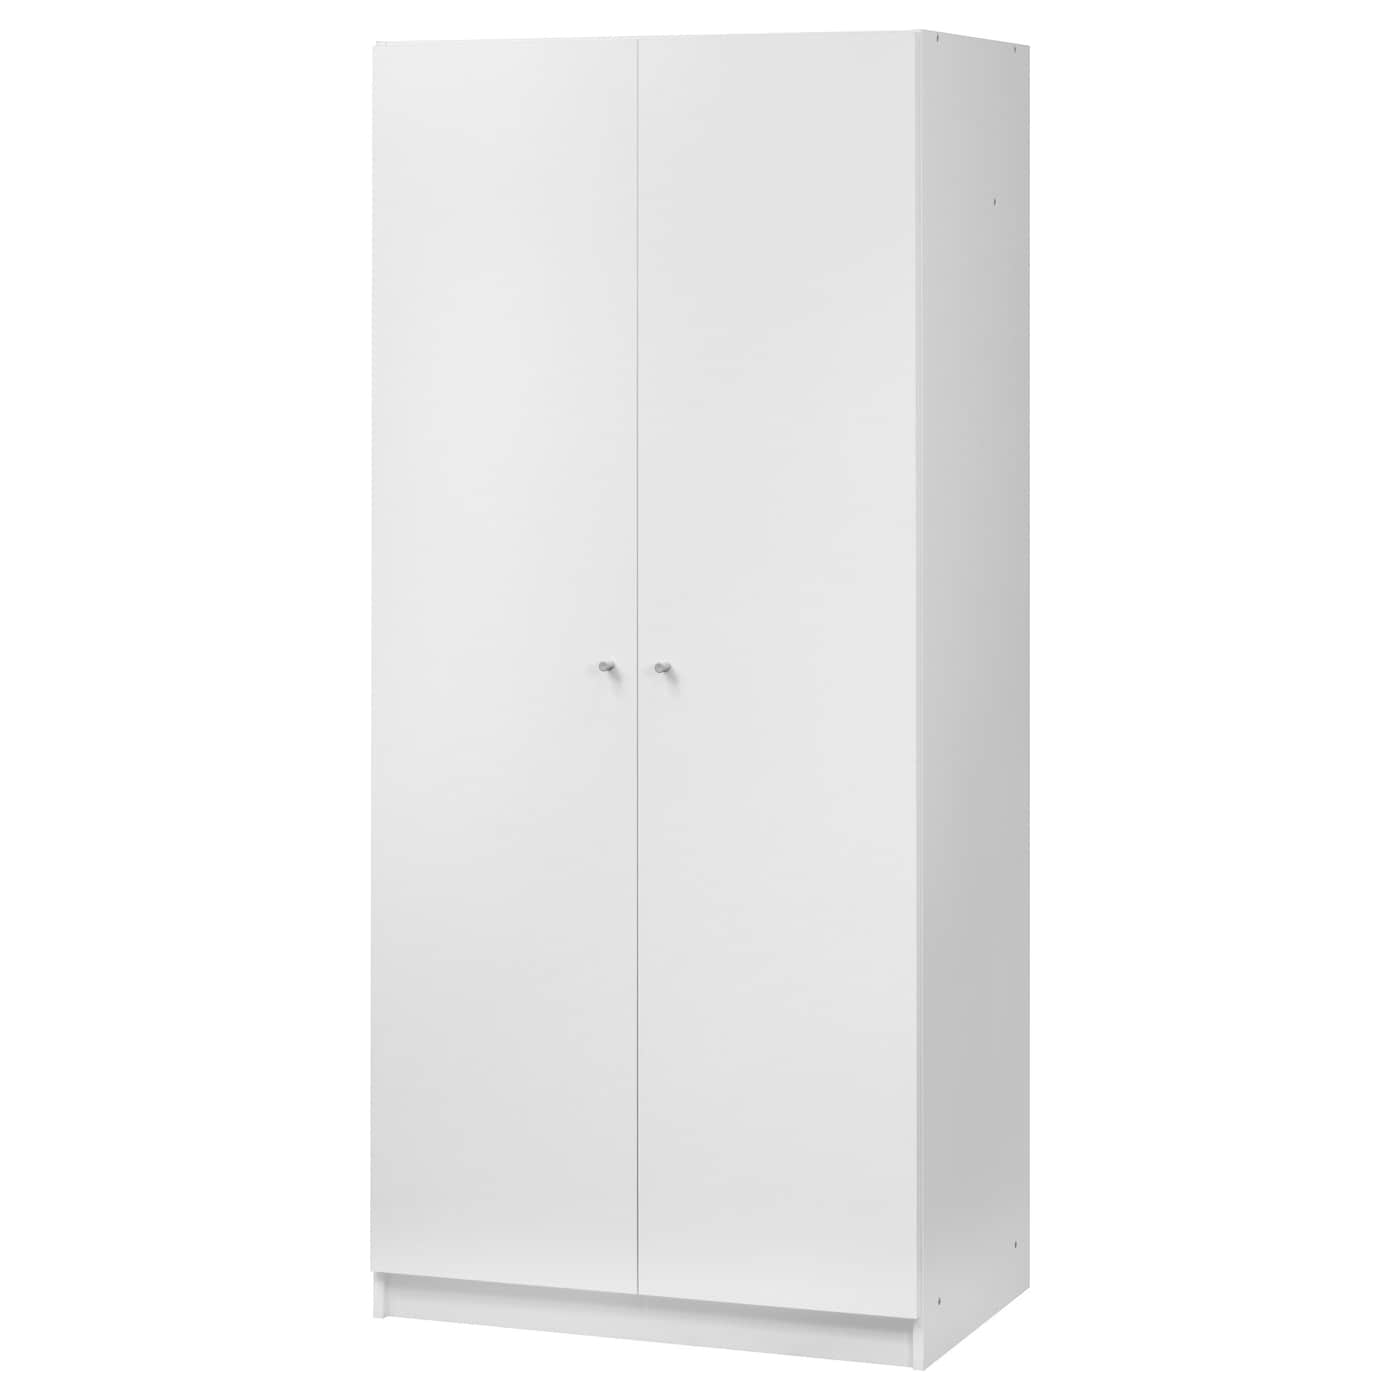 Bostrak wardrobe white 80x50x180 cm ikea for Schrank 60x40